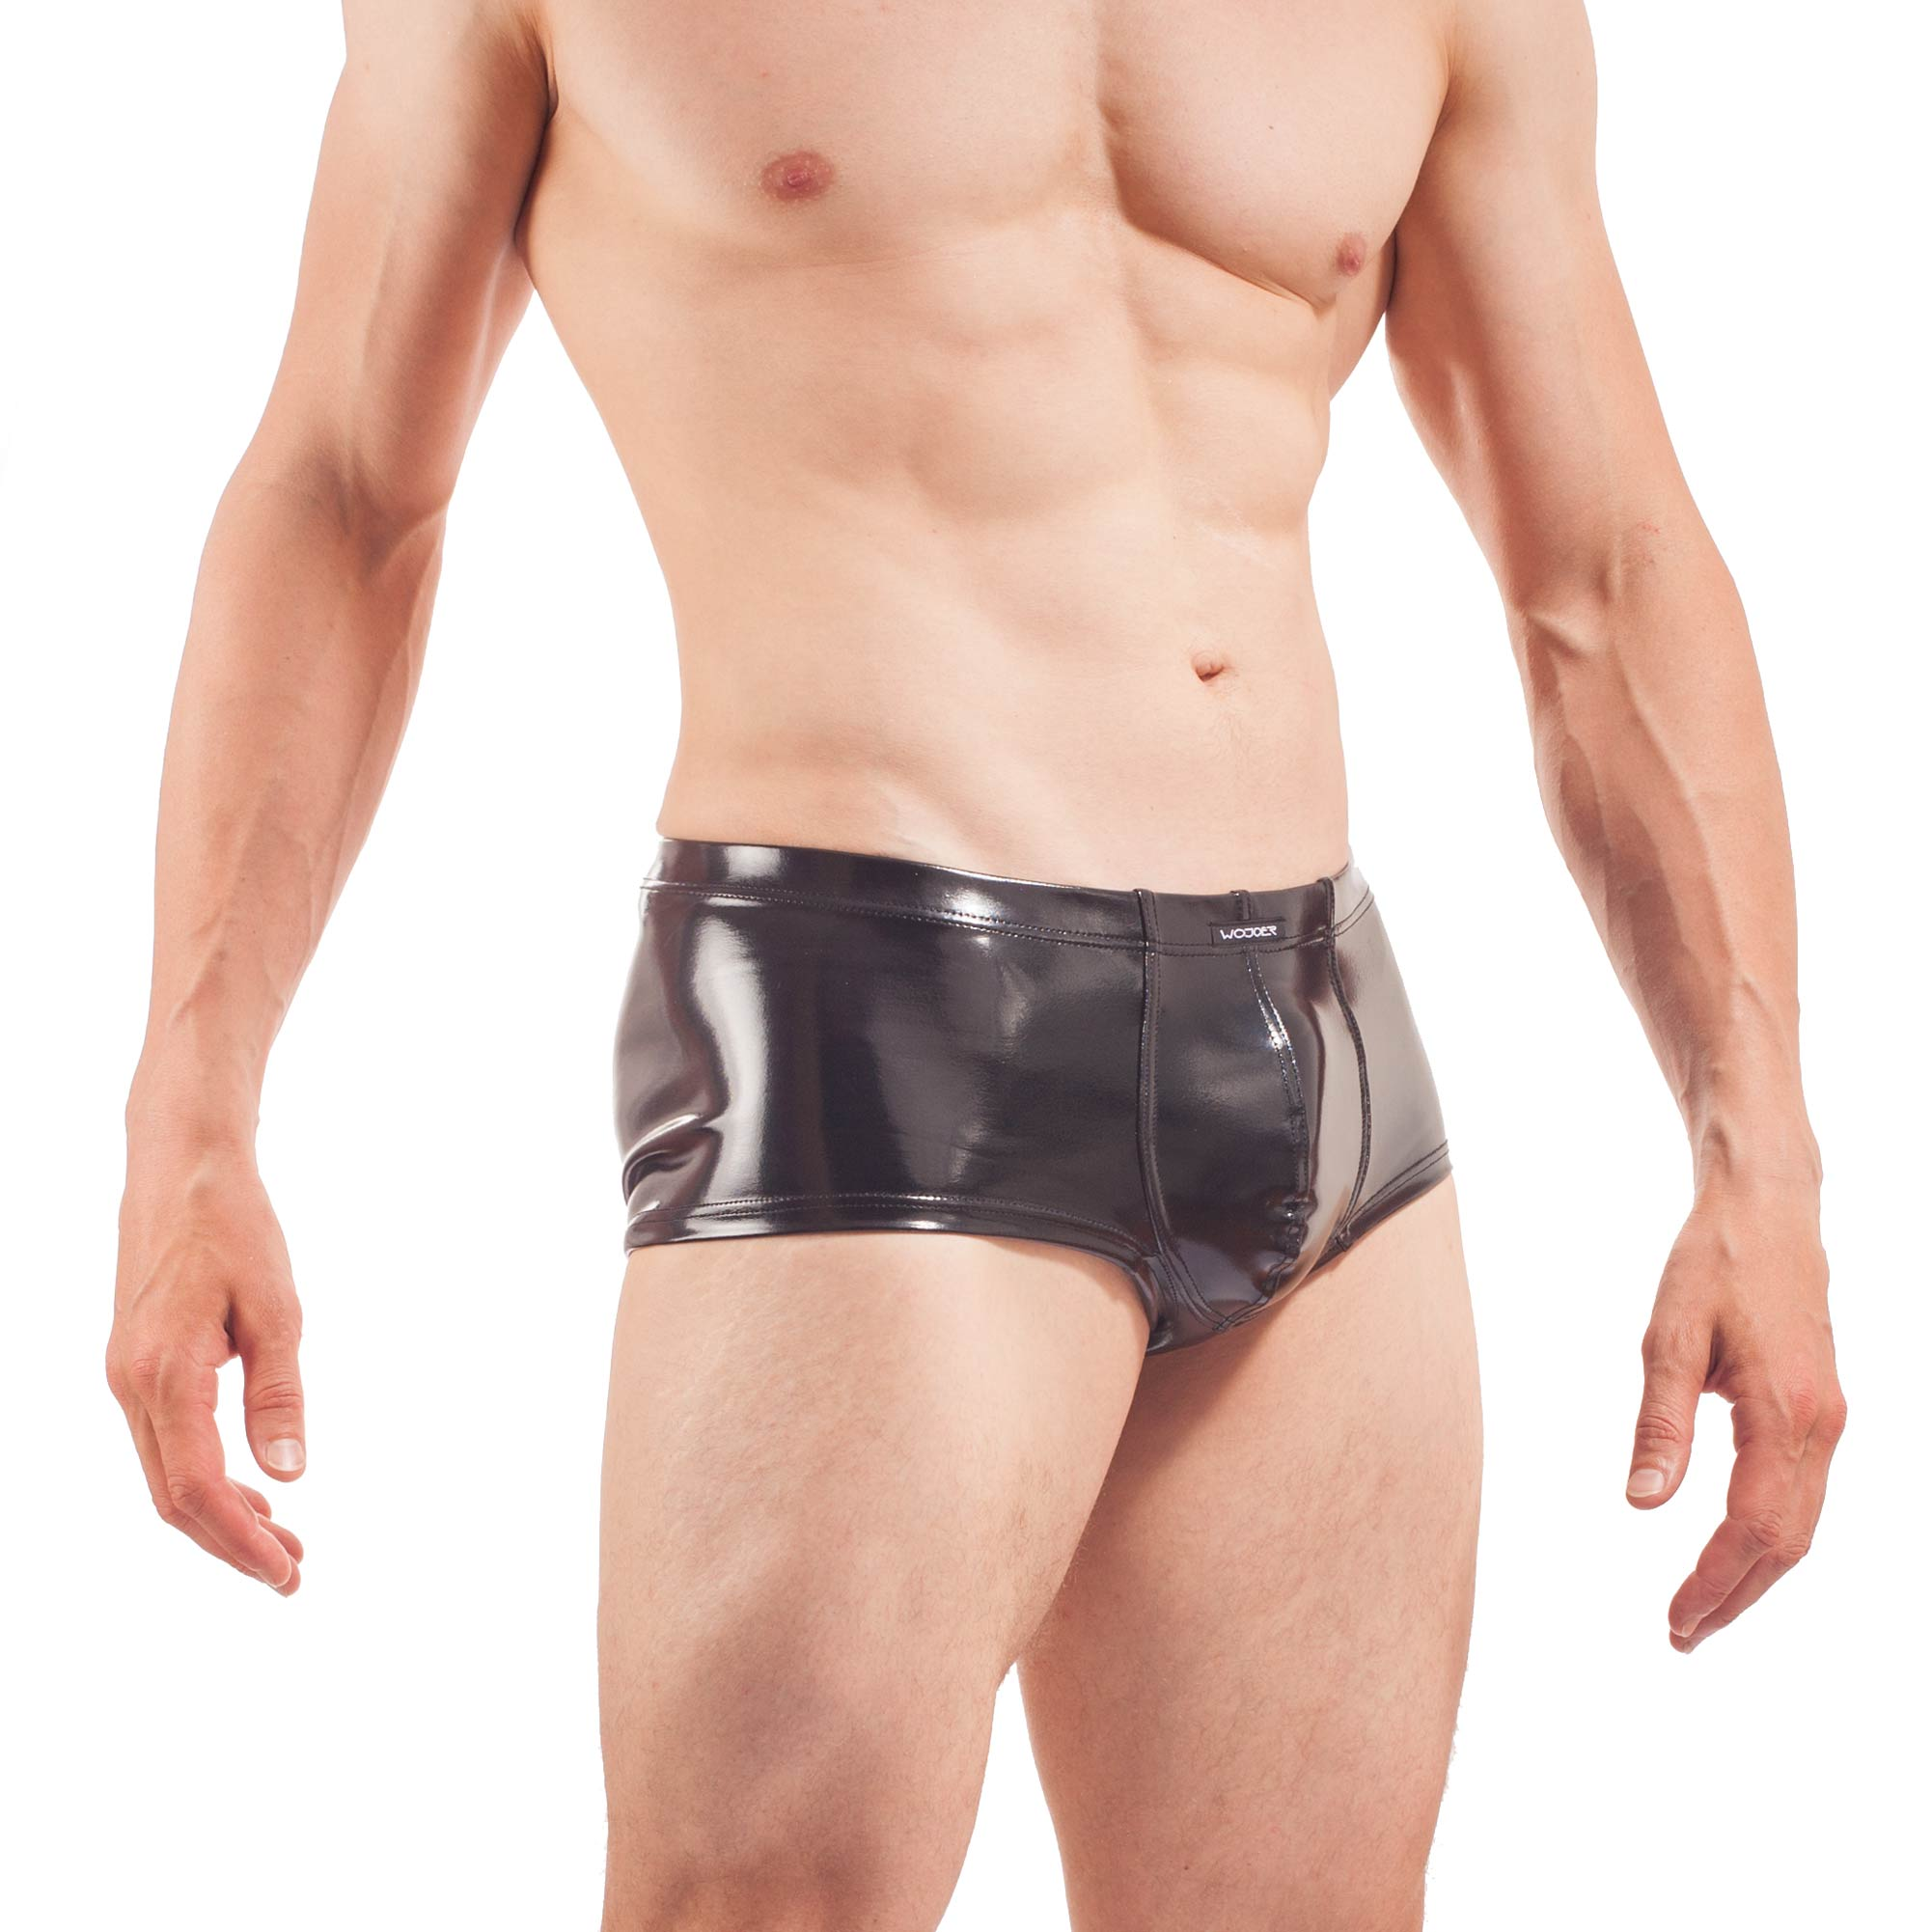 glossy wet leather Pants, Hipster in wetleather, Lack Glanz, Gummihose, Rubber Shorts, schwarzer Glanz, Fetisch